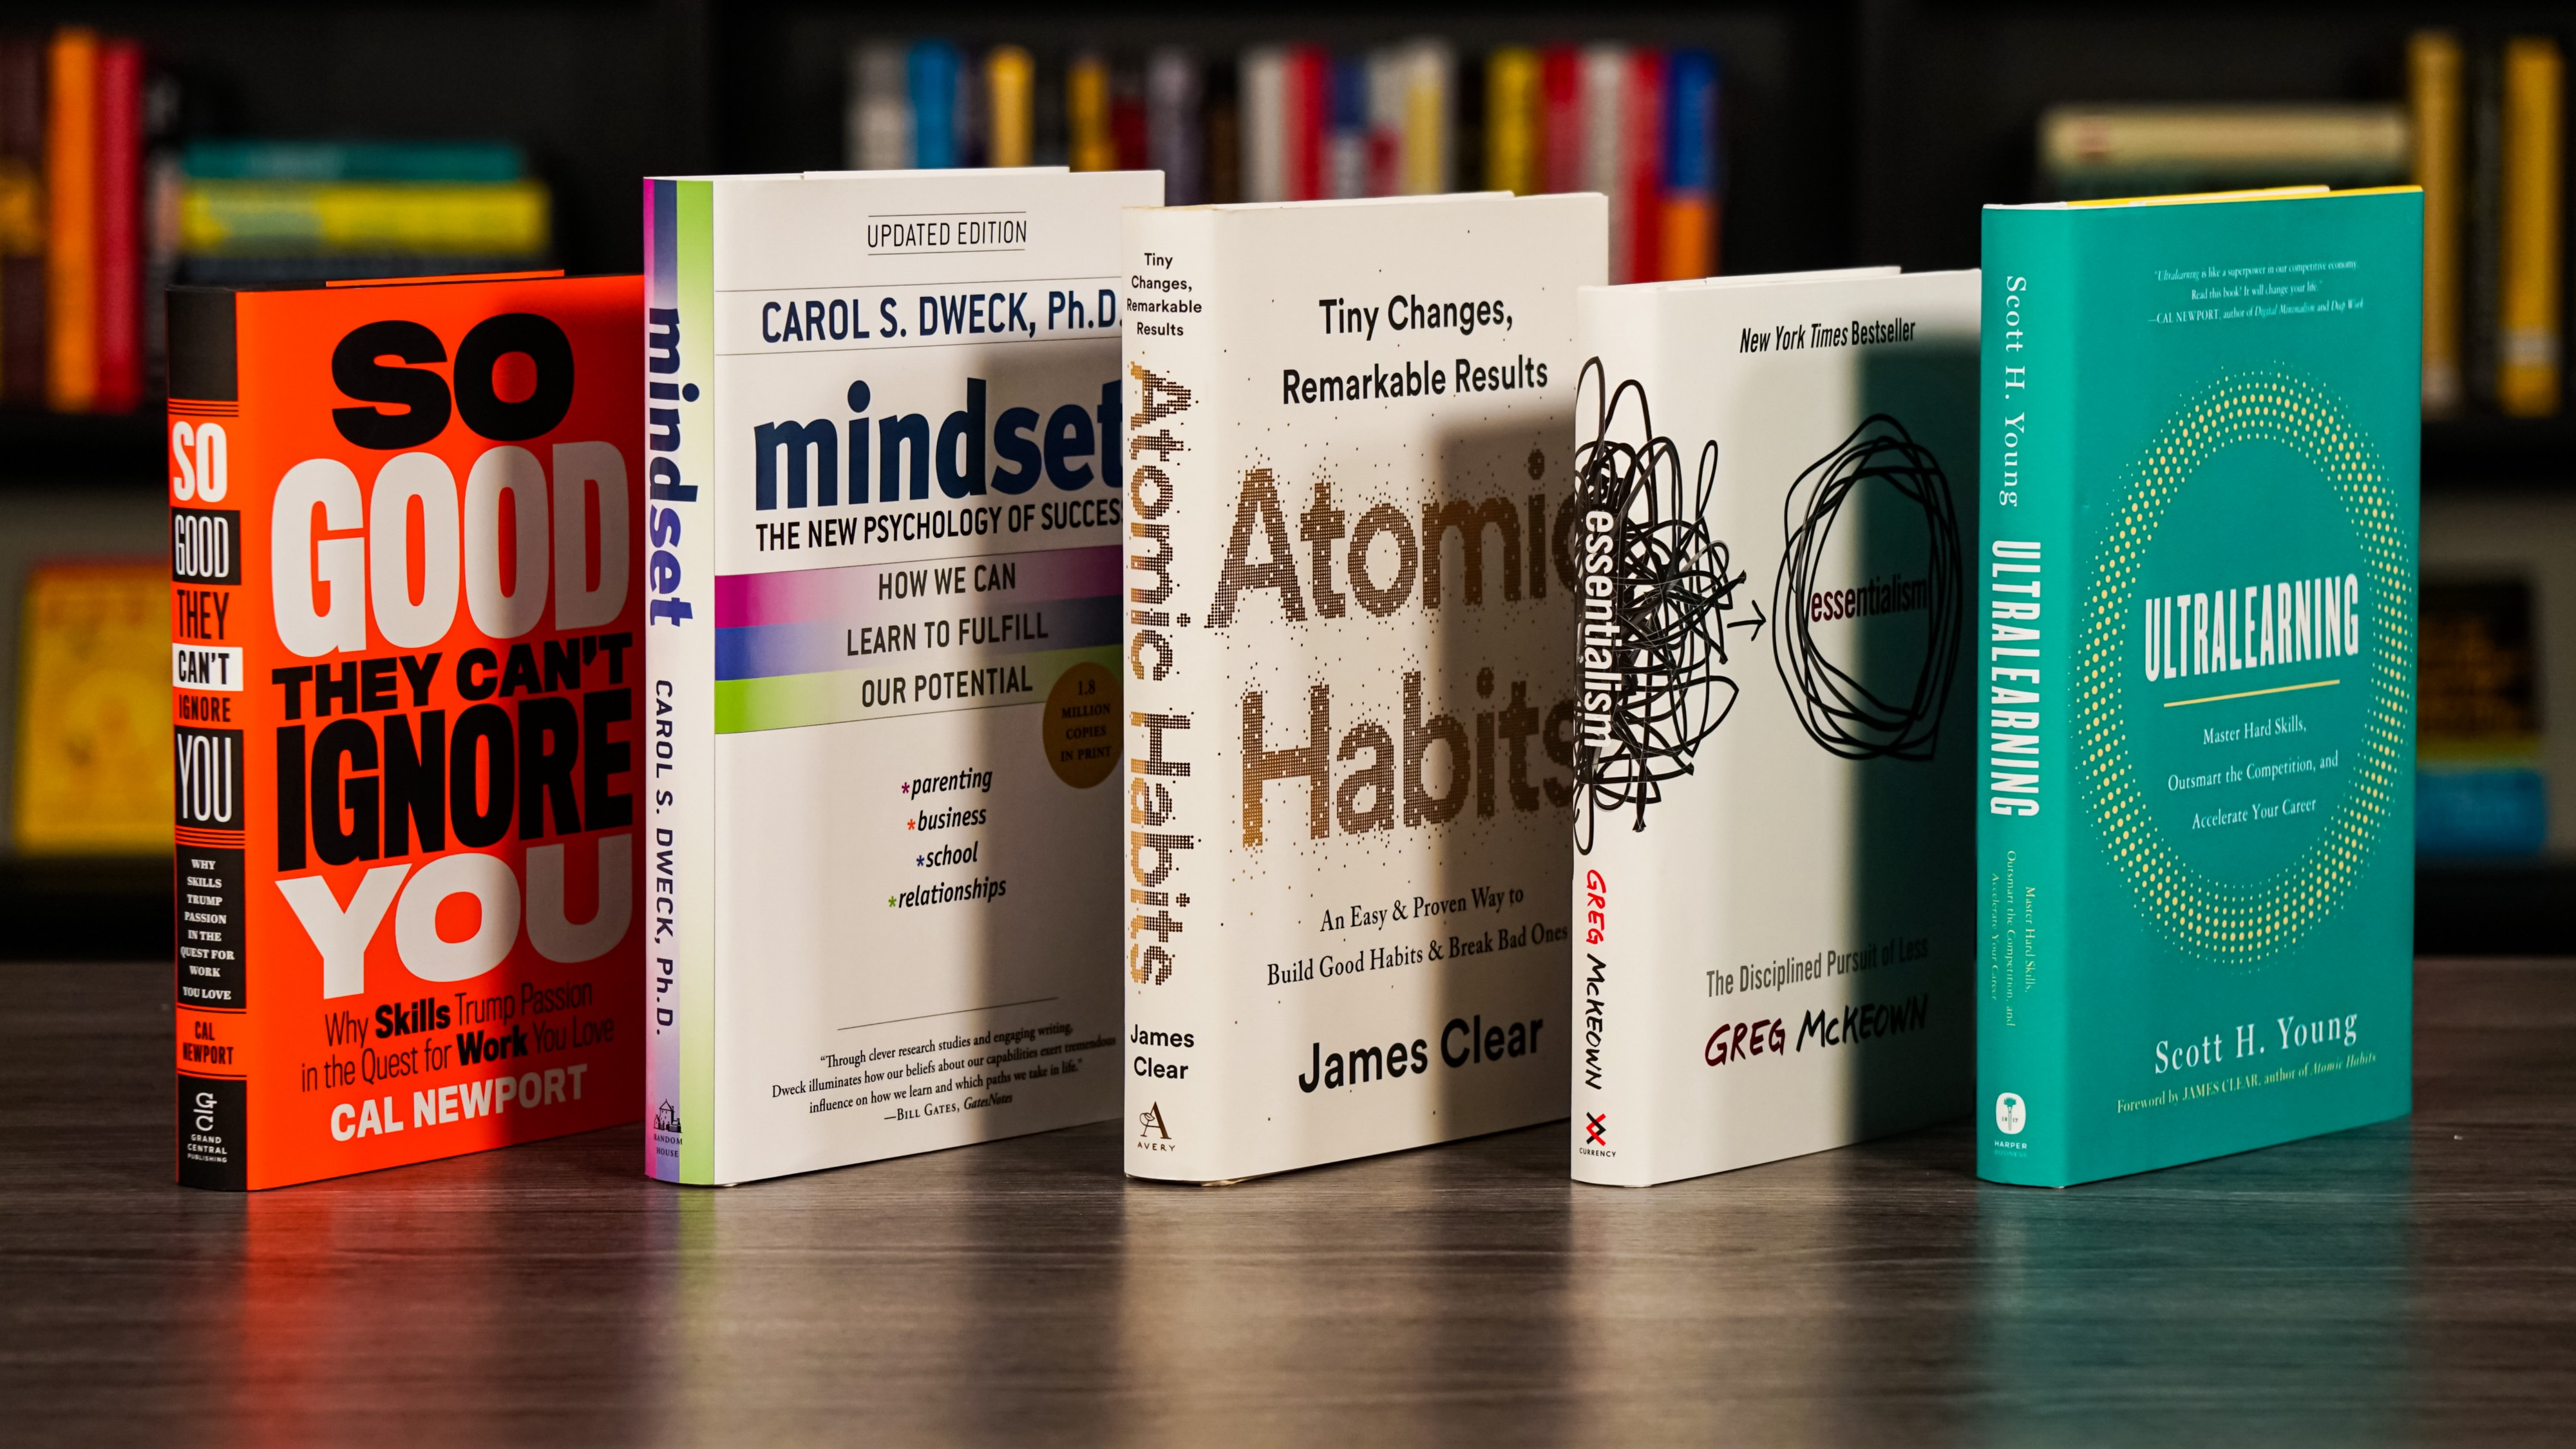 The Best Self-Help Books For Entrepreneurs To Read In 2021